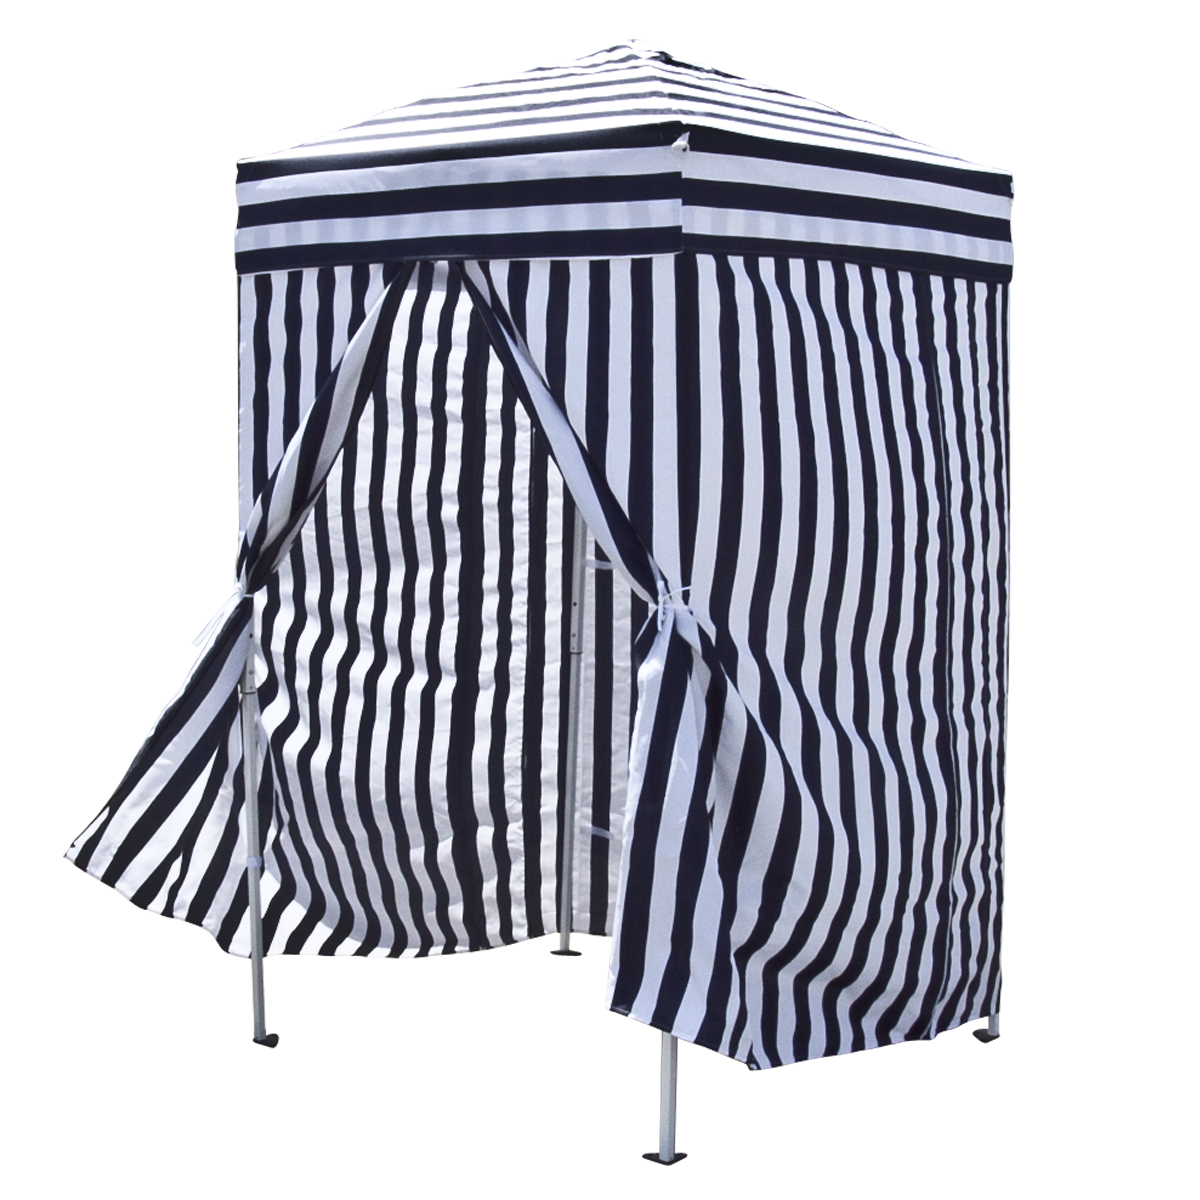 Pop Up Cabana : Changing cabana portable stripe room privacy tent pool